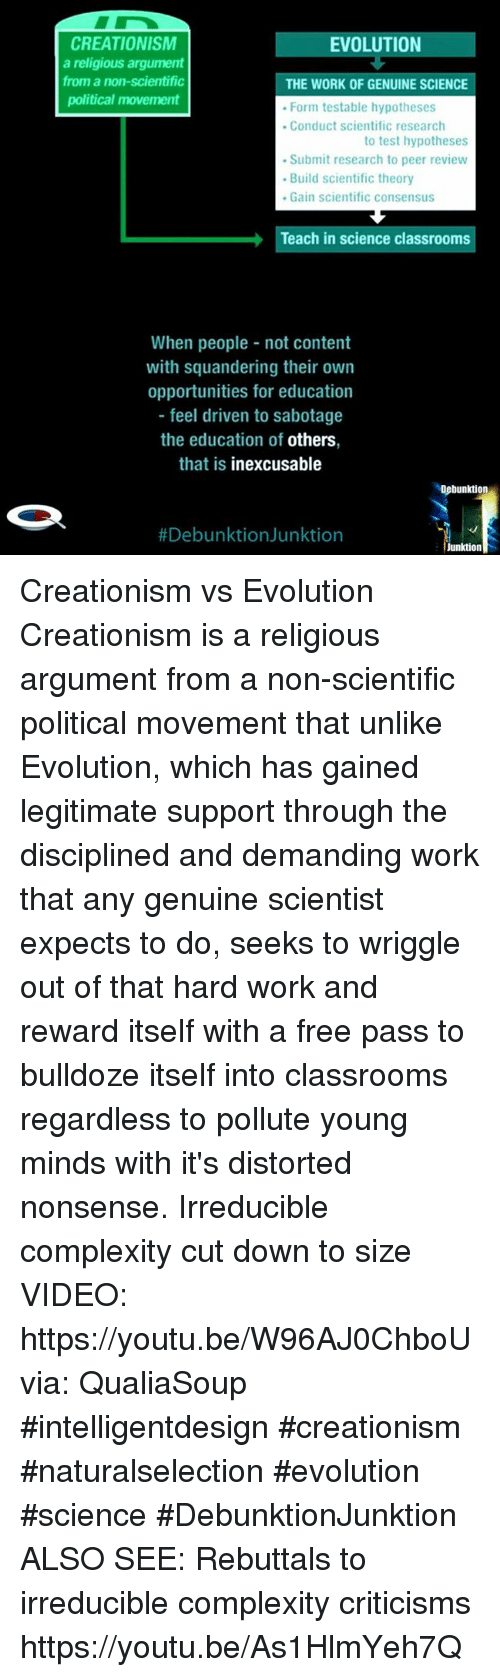 an analysis of creation versus evolution on an educational view Free essay: creation v evolution: an educational view many words have been written about the origins of things numerous ancient people believed that.